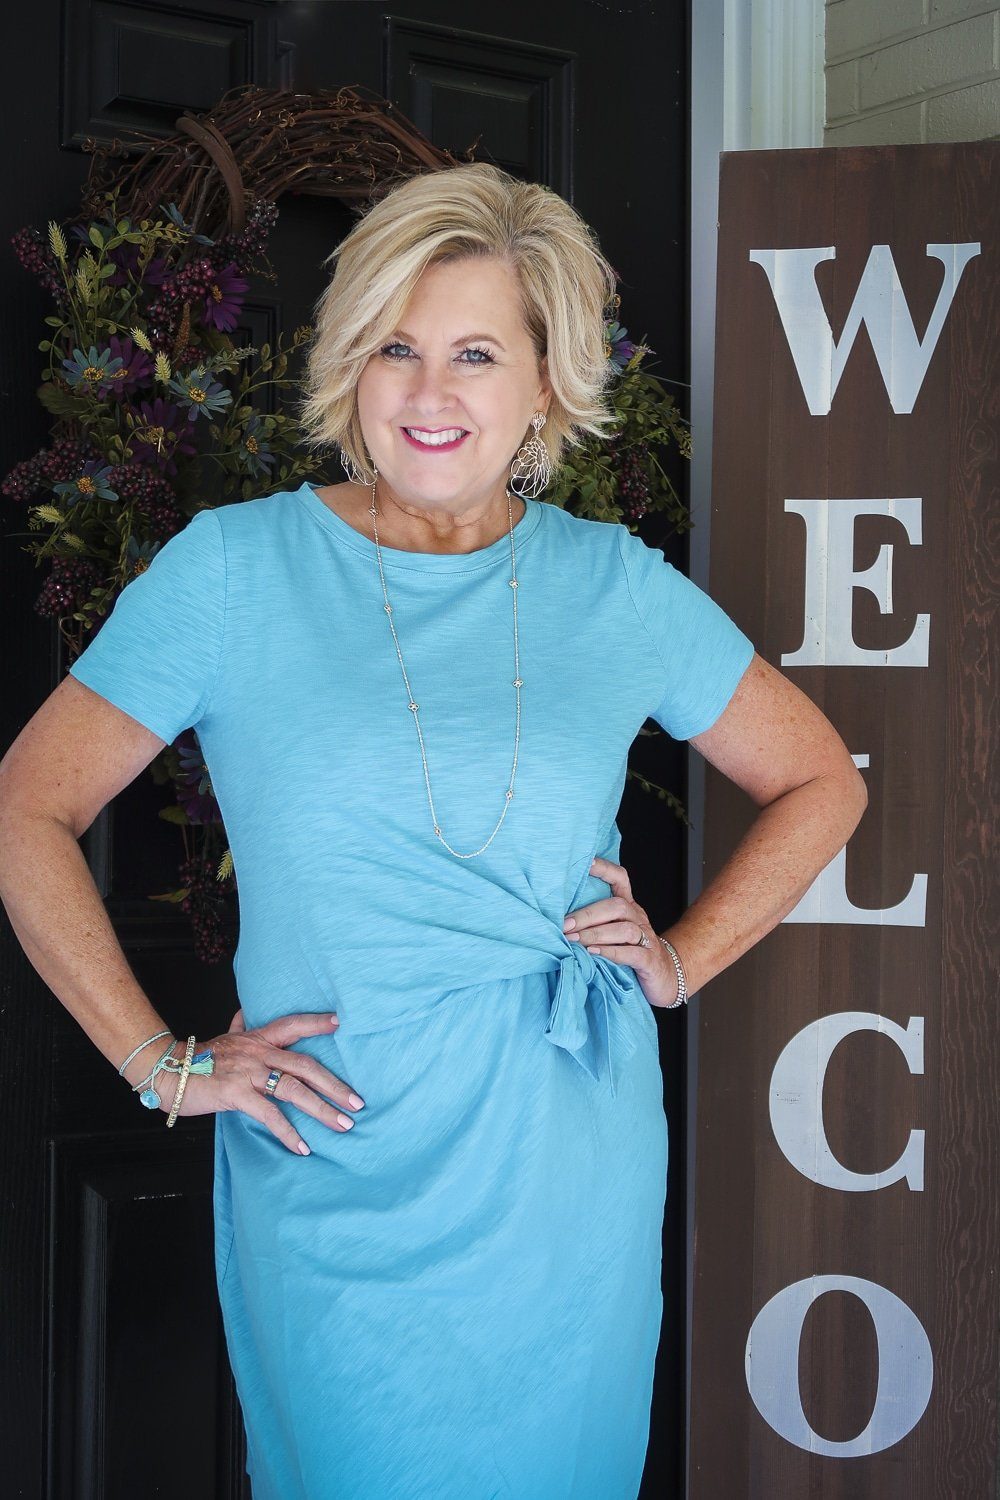 Fashion Blogger Tania Stephens is wearing a blue side-tie dress